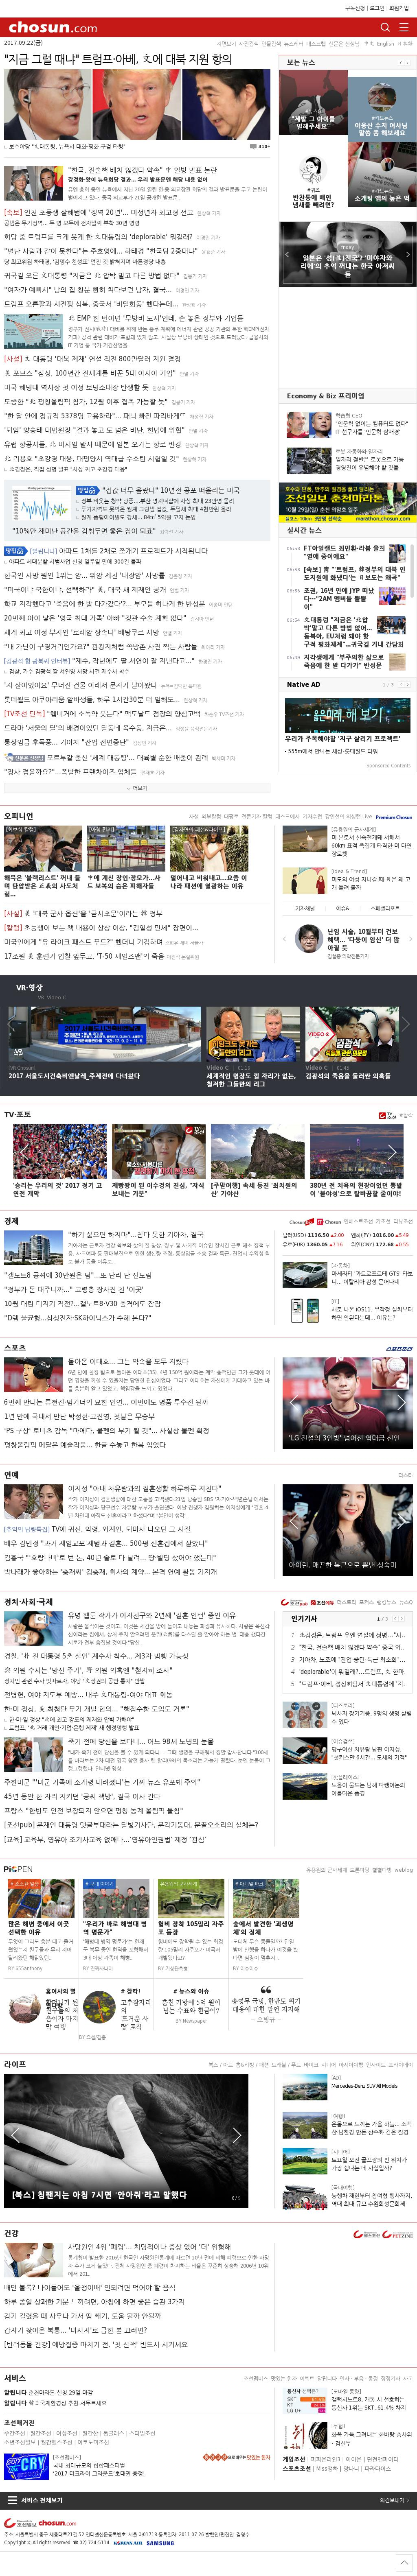 chosun.com at Friday Sept. 22, 2017, 7 a.m. UTC